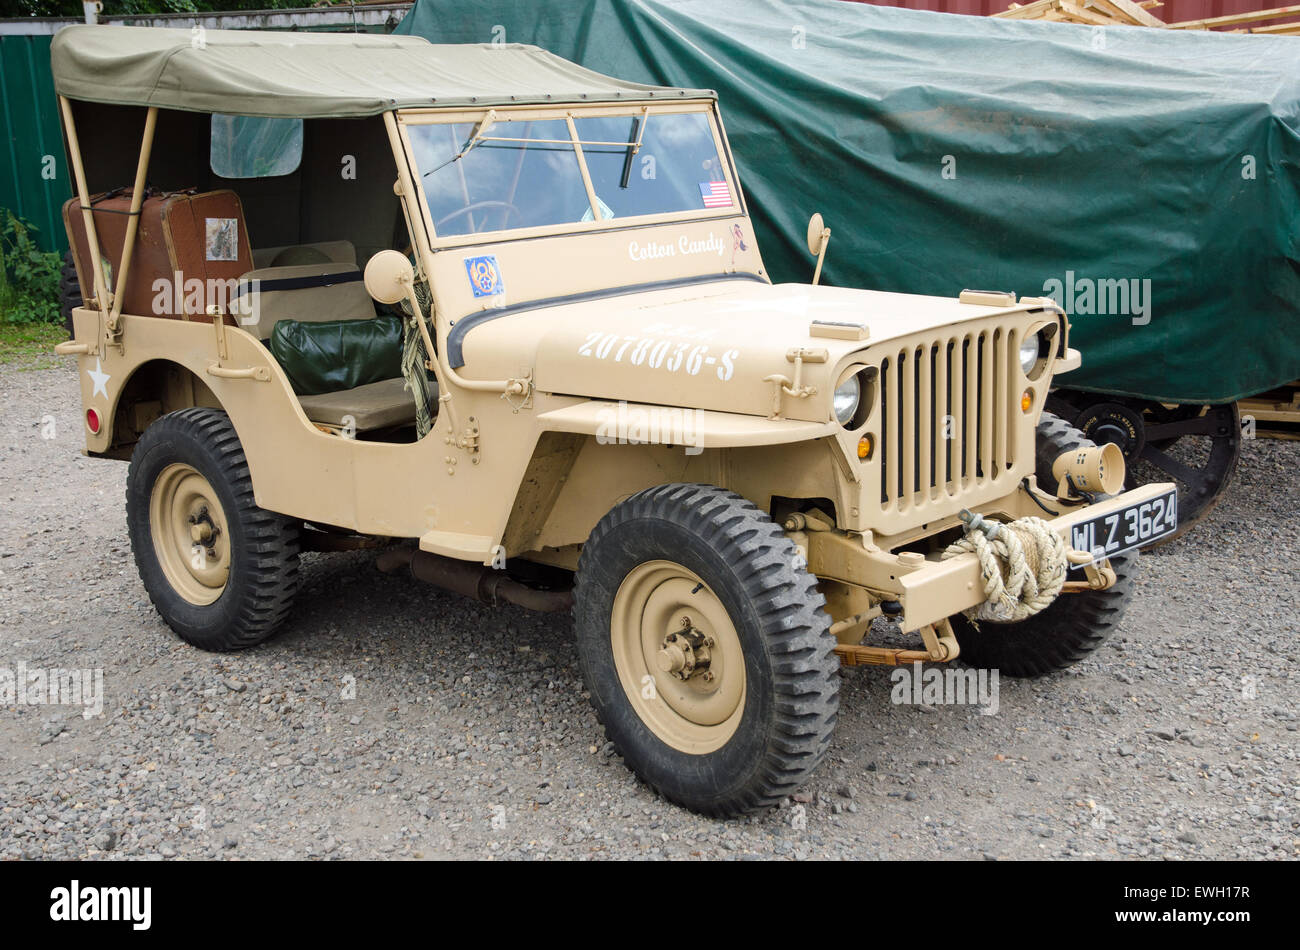 Ww2 Jeep For Sale >> A Willys Jeep from WW2 in desert sand colours - these ...